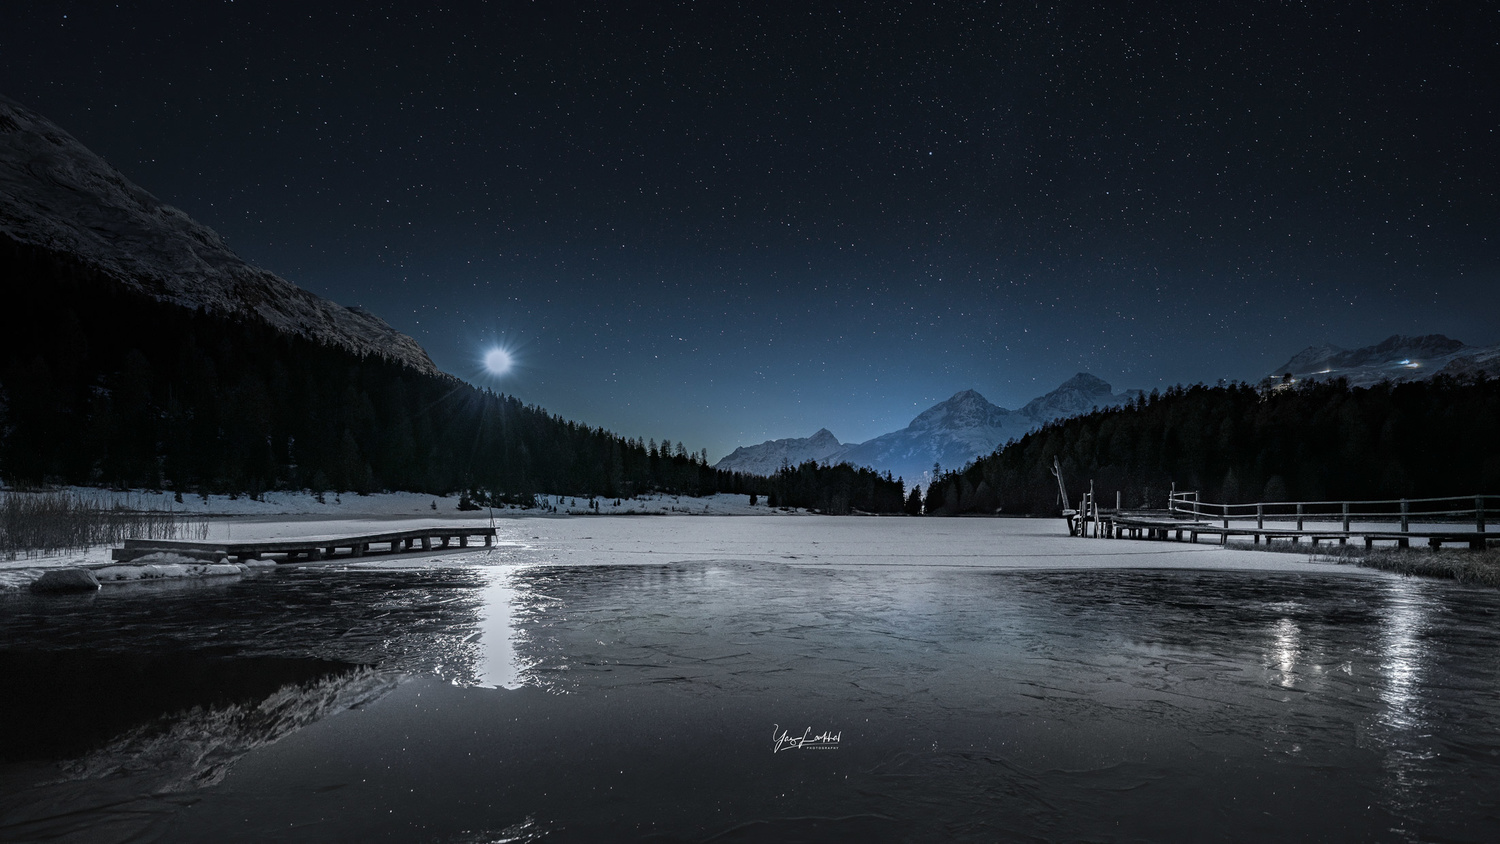 Starry night by the lake by Yaz Loukhal